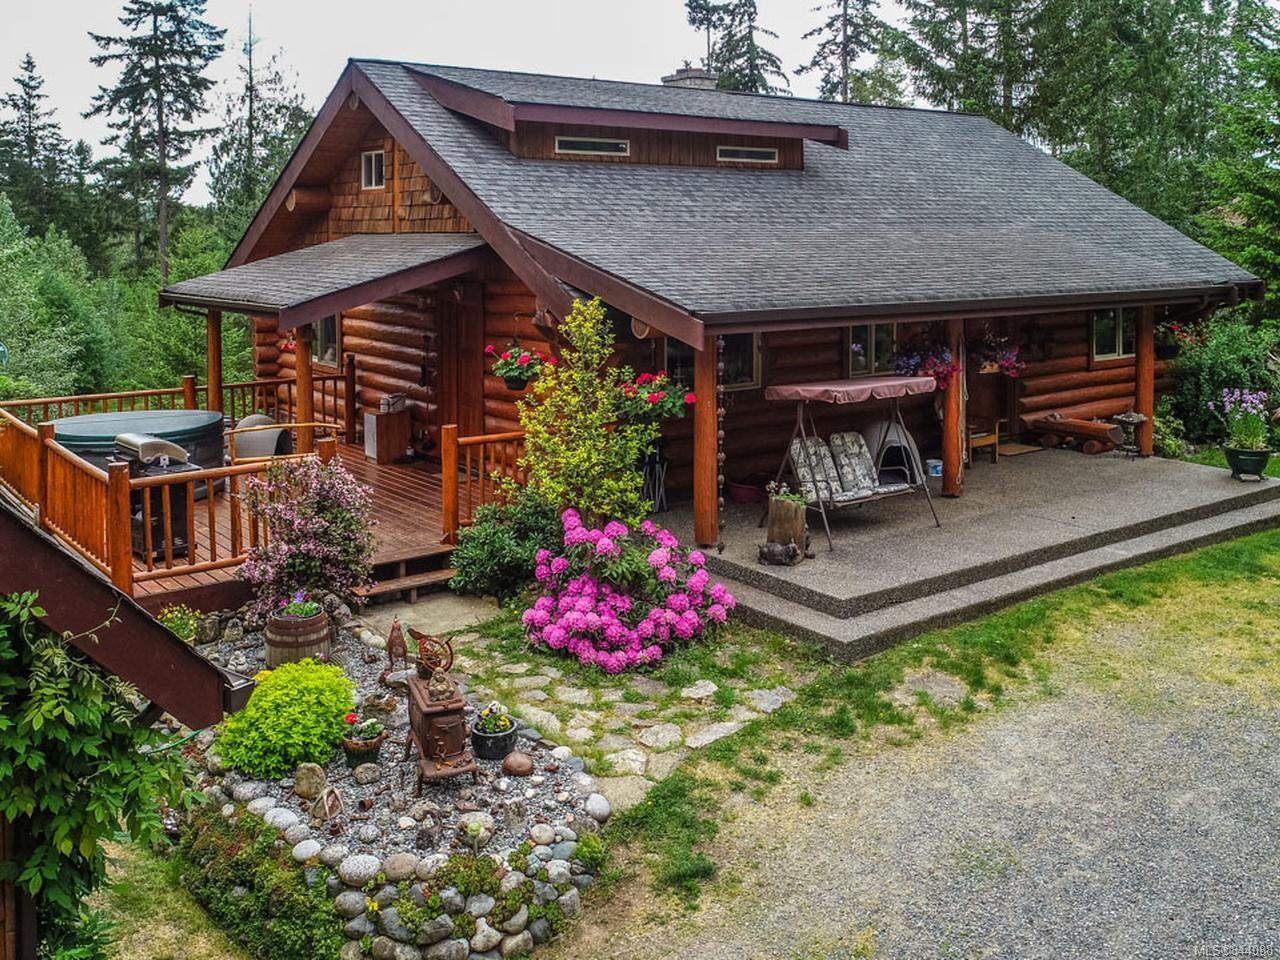 FEATURED LISTING: 2600 South Forks Rd NANAIMO